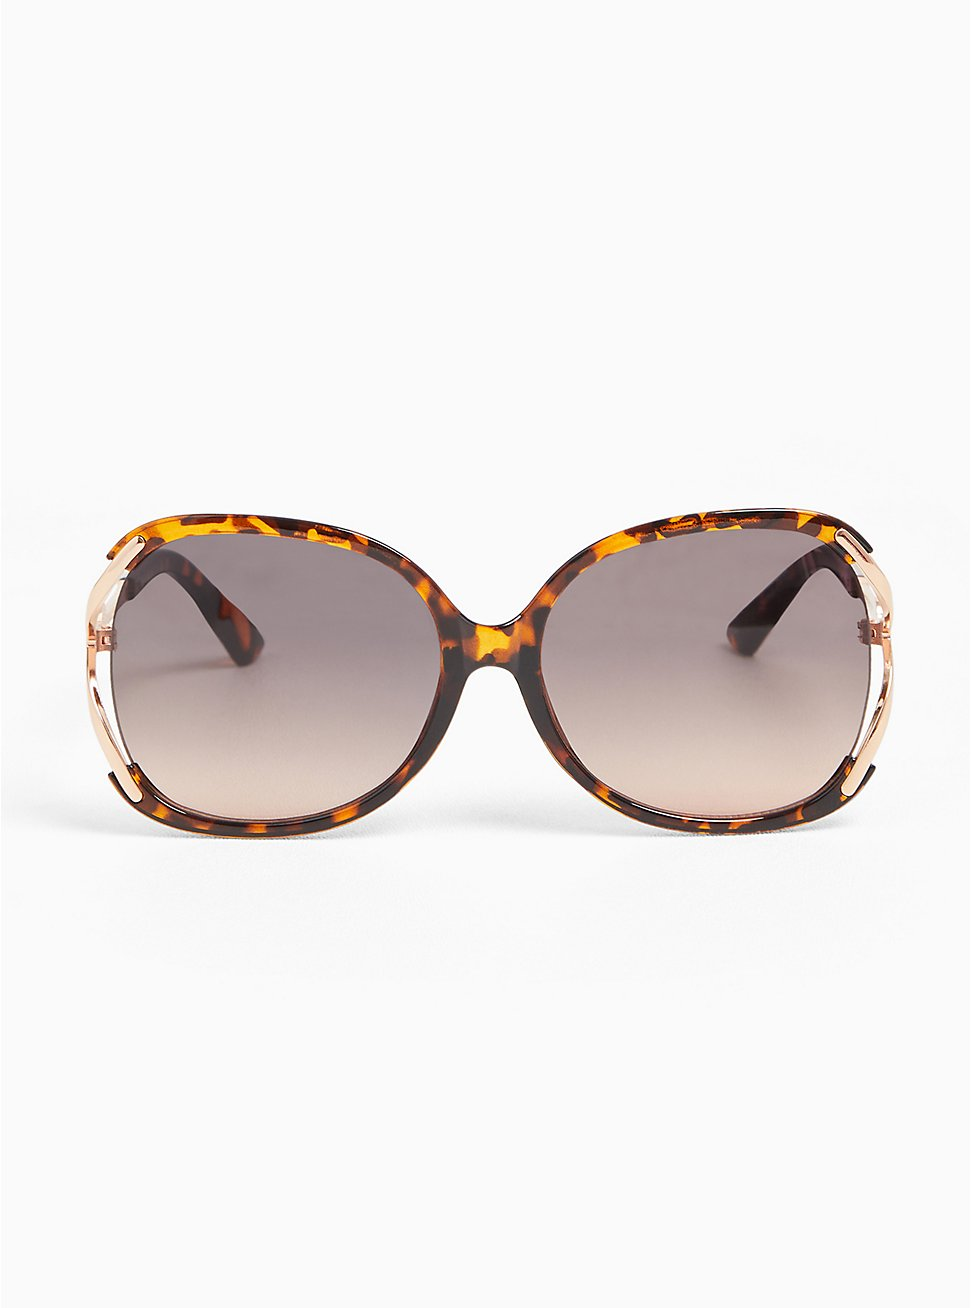 Tortoiseshell Side Cutout Oval Sunglasses, , hi-res